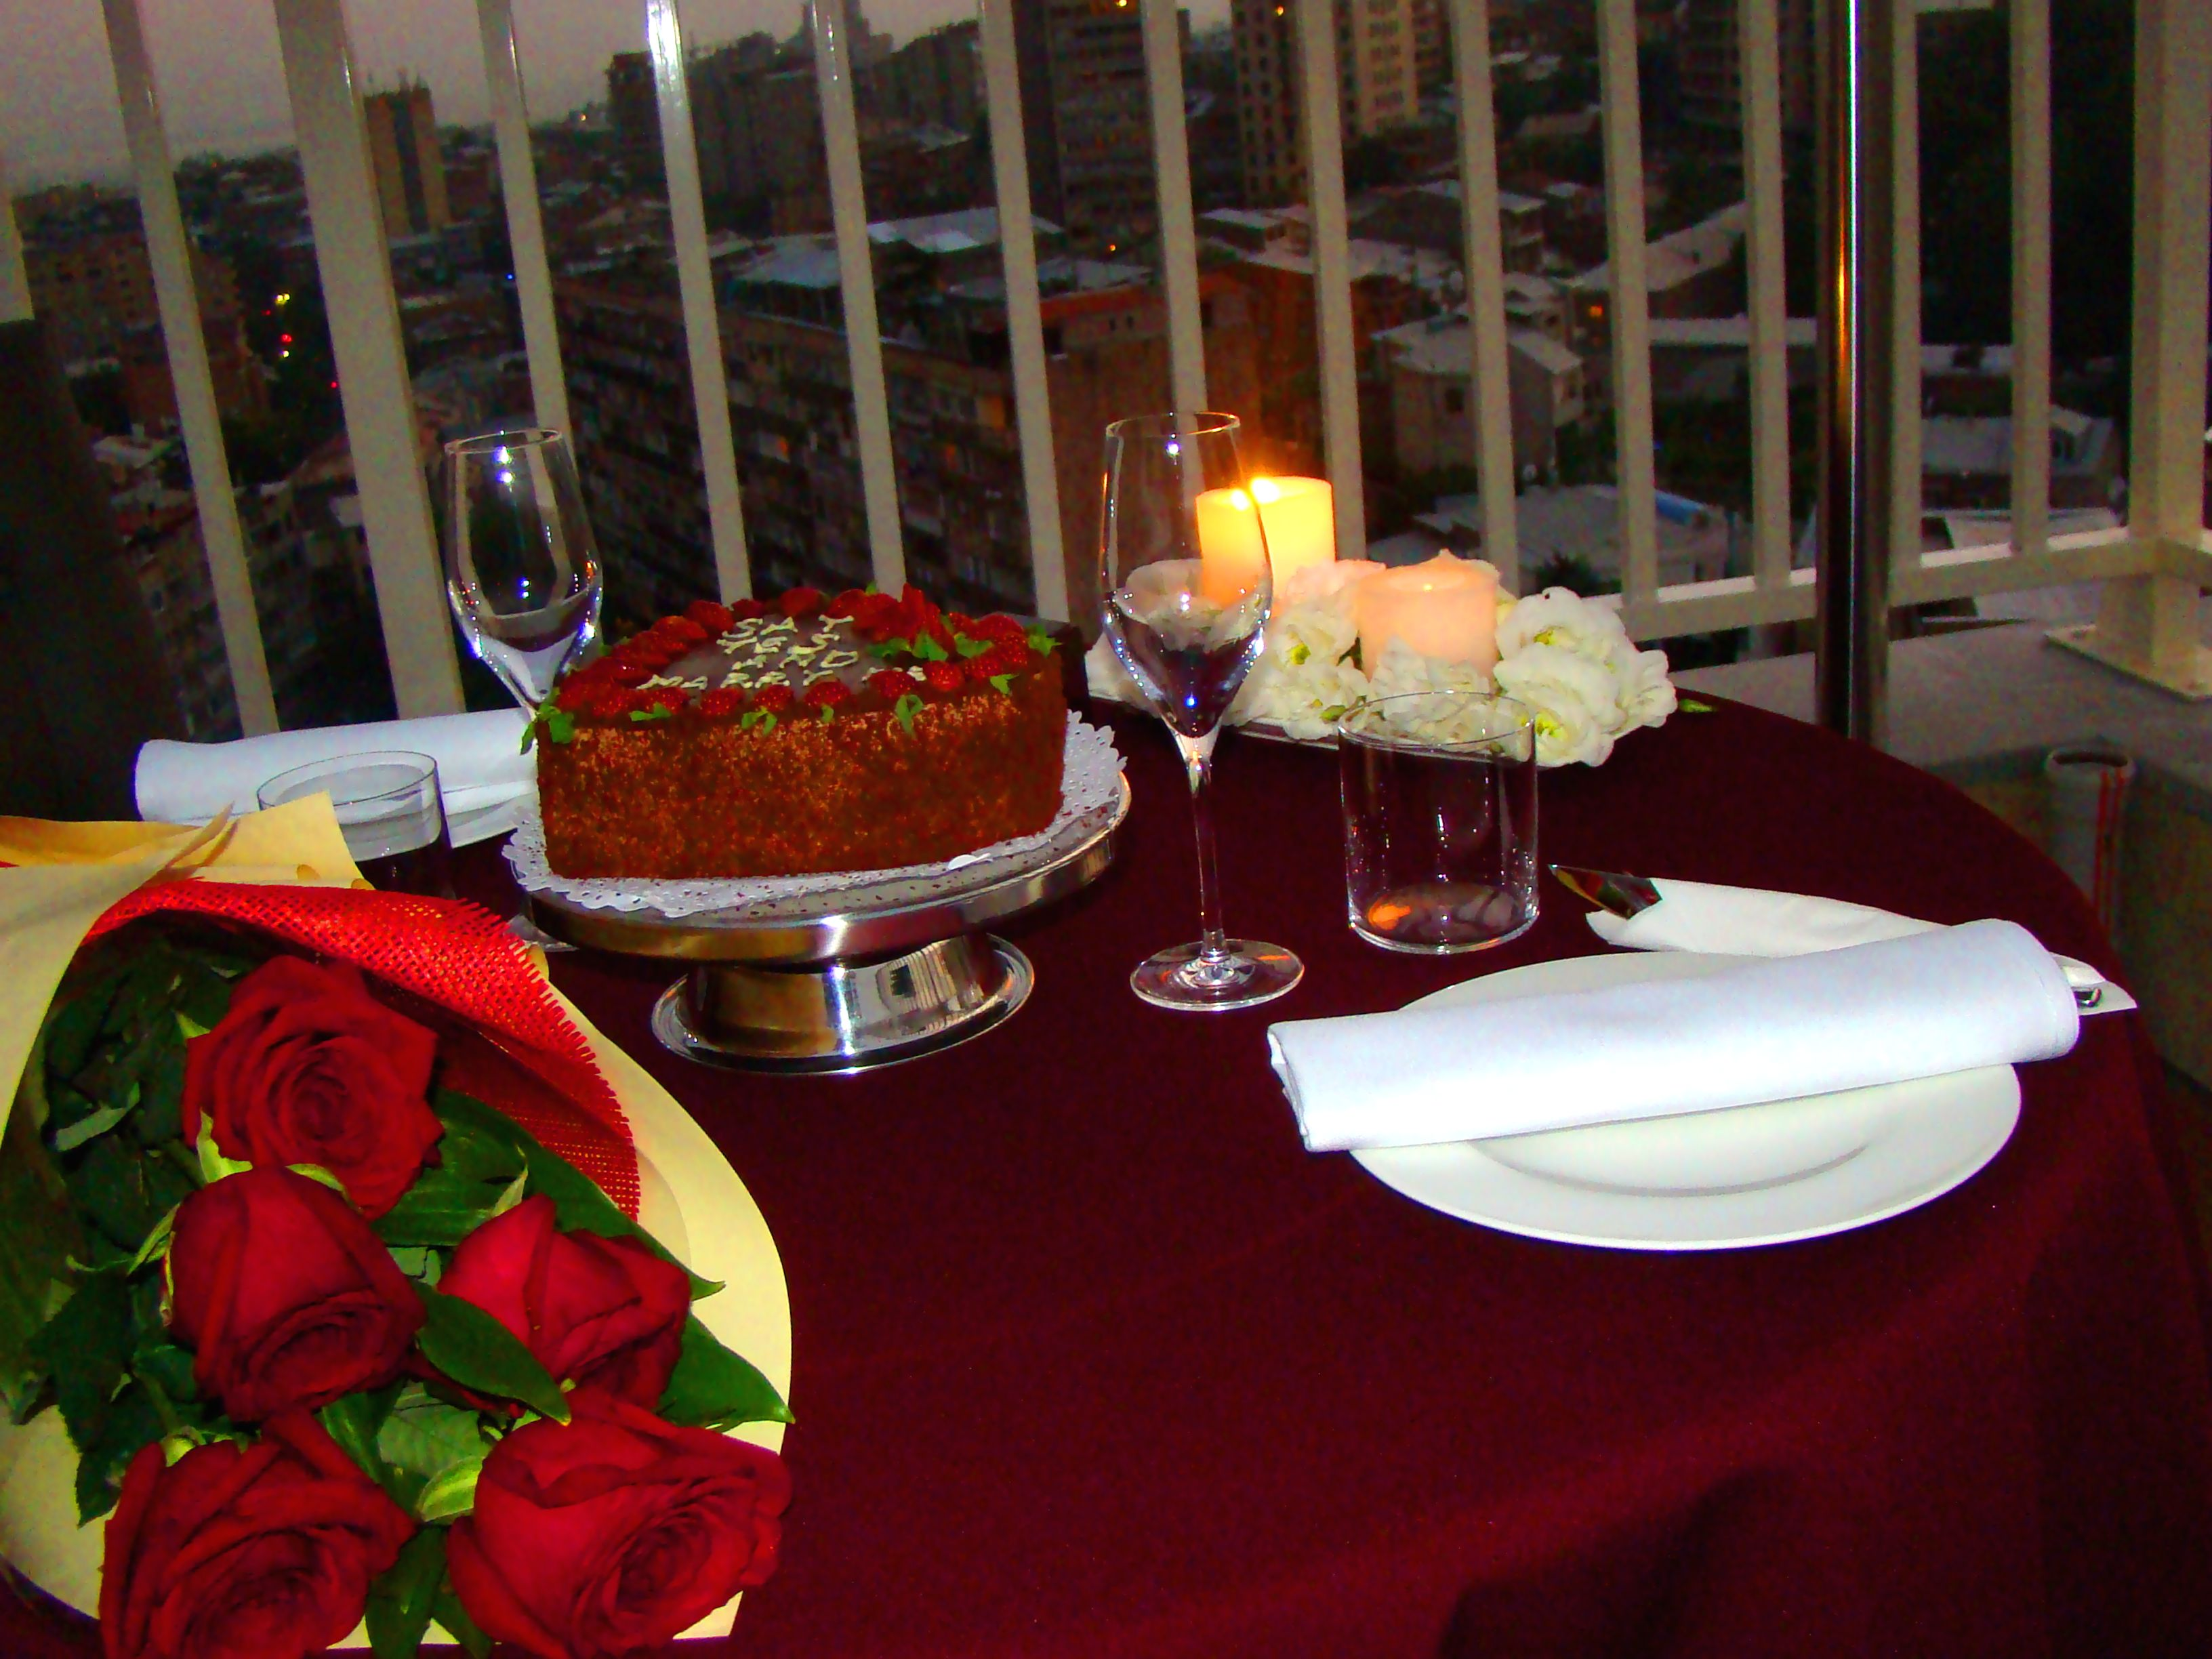 Opera Suite Hotel Yerevan Wedding package Dinner at Sinatra Restaurant